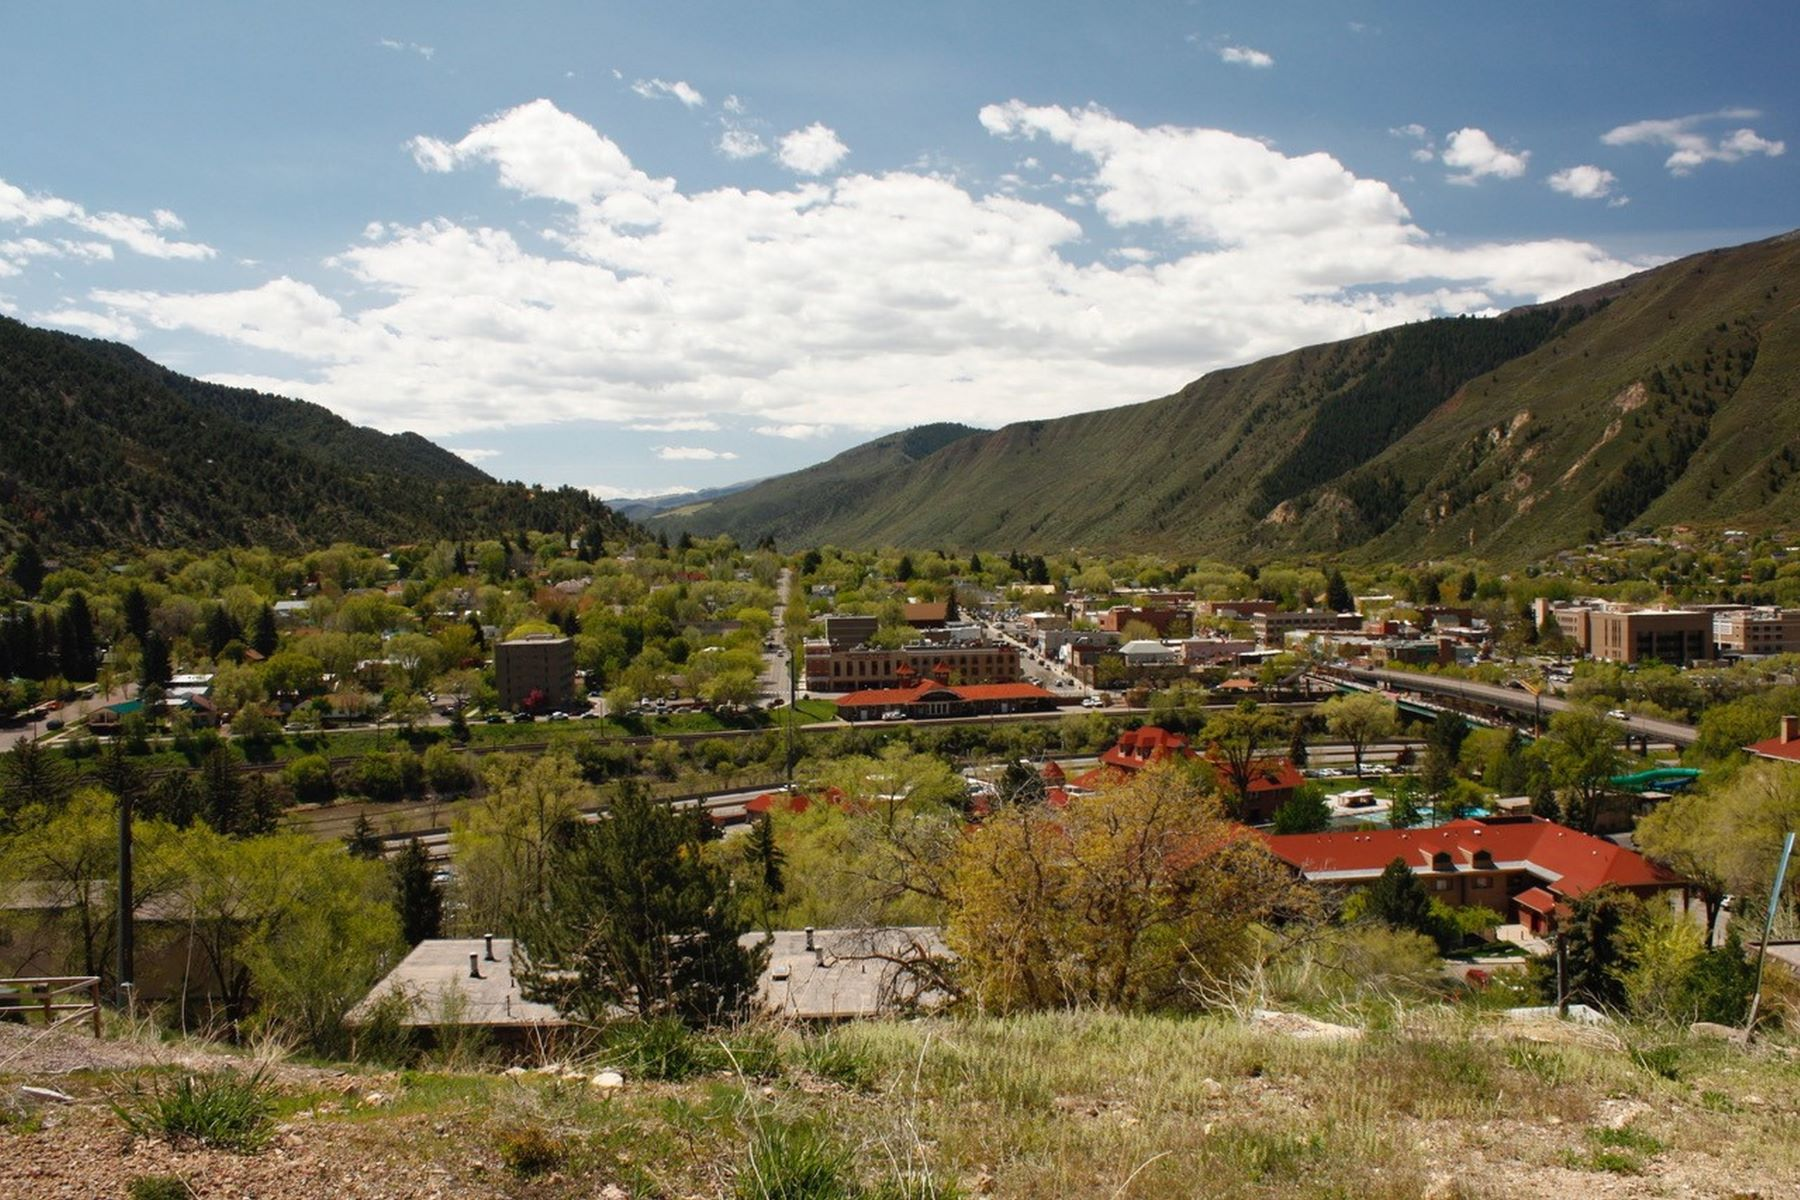 Terreno por un Venta en Triplex Lot in Downtown Glenwood Springs 502-506 Echo Street Glenwood Springs, Colorado, 81601 Estados Unidos